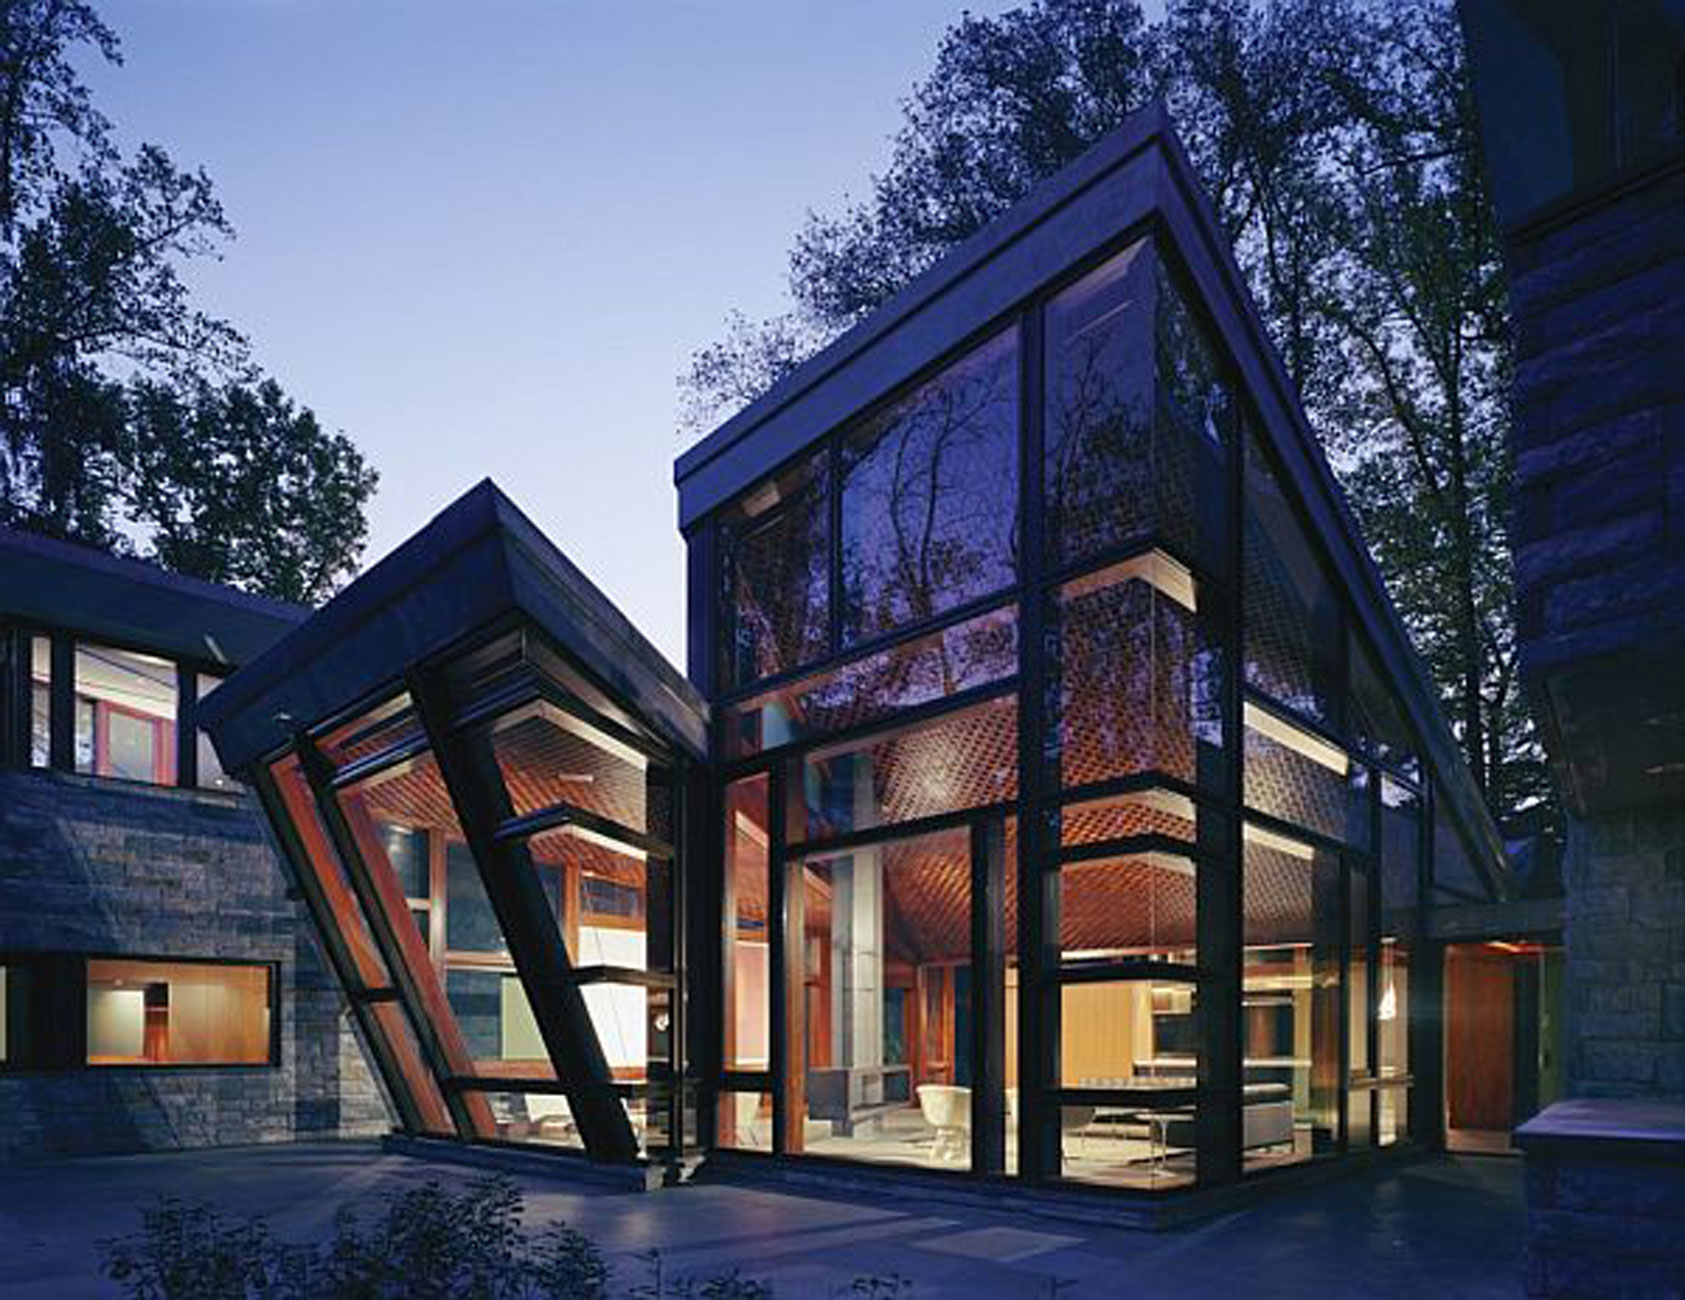 Sunday evening art gallery blog glass houses humoring for Architecture building design